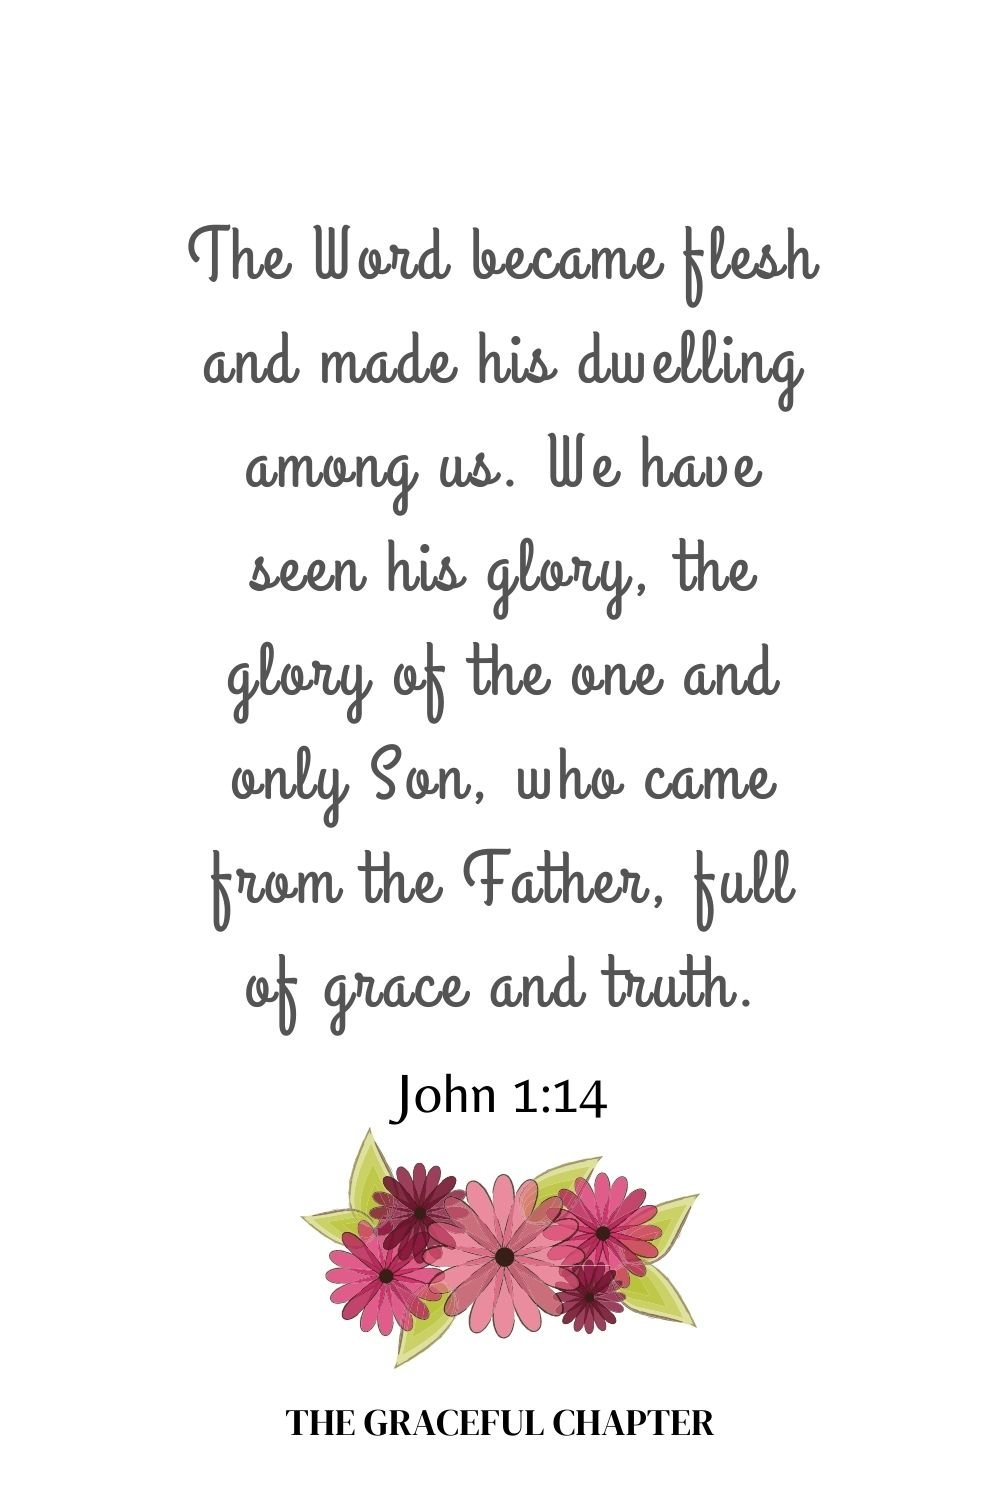 The Word became flesh and made his dwelling among us. We have seen his glory, the glory of the one and only Son, who came from the Father, full of grace and truth. John 1:14